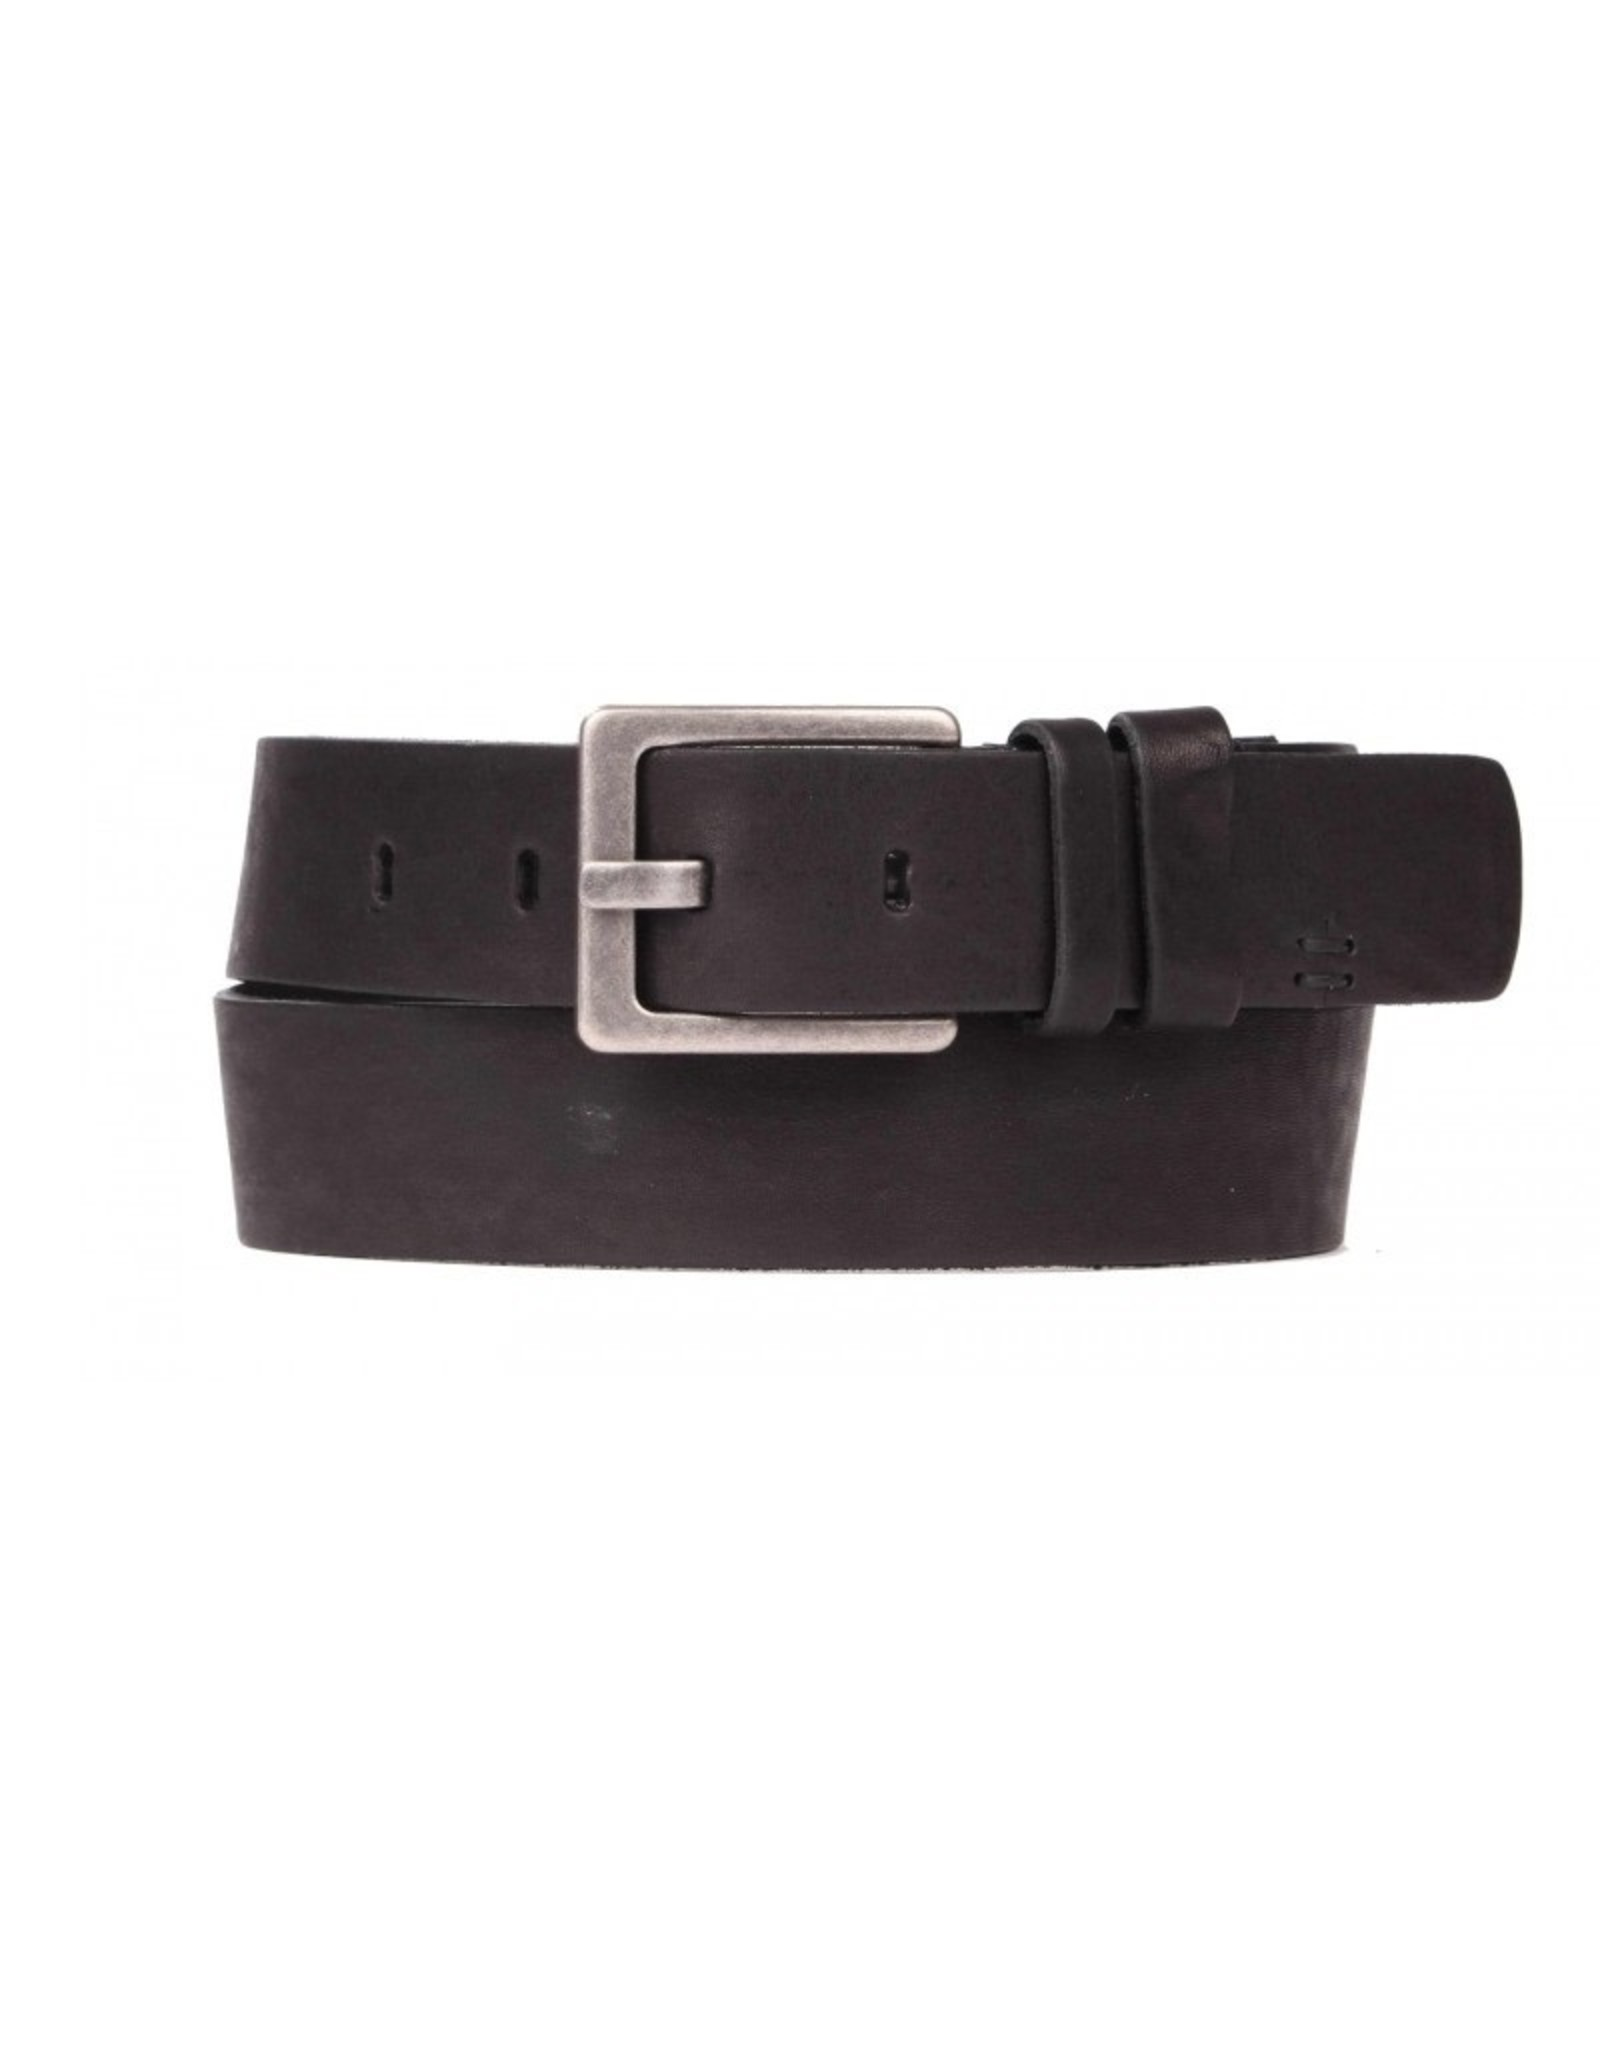 Legend Legend belt black 40738